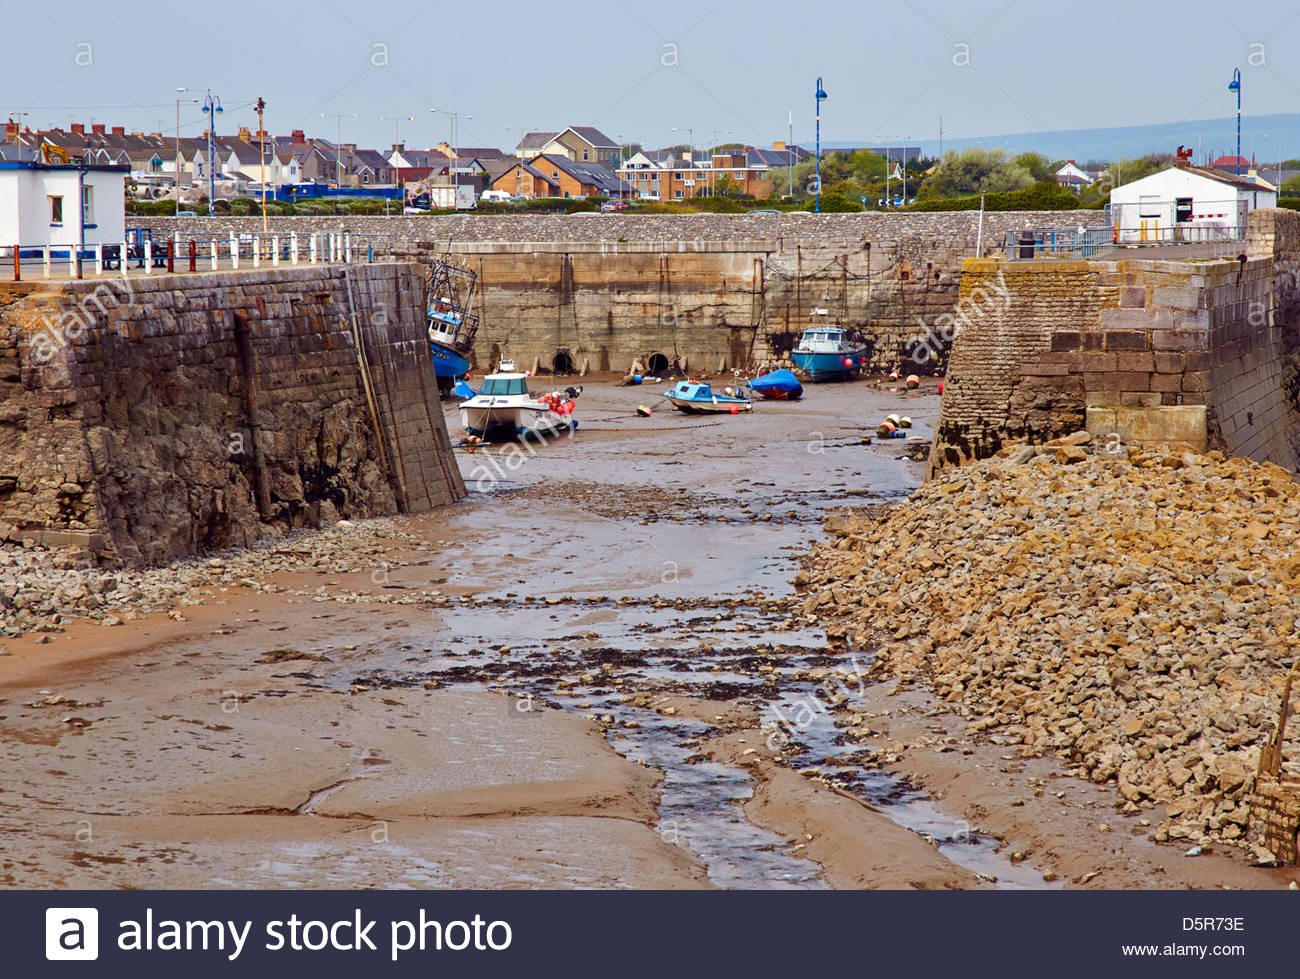 the harbour in porthcawl with the tide out and moored motor boats - Stock Image